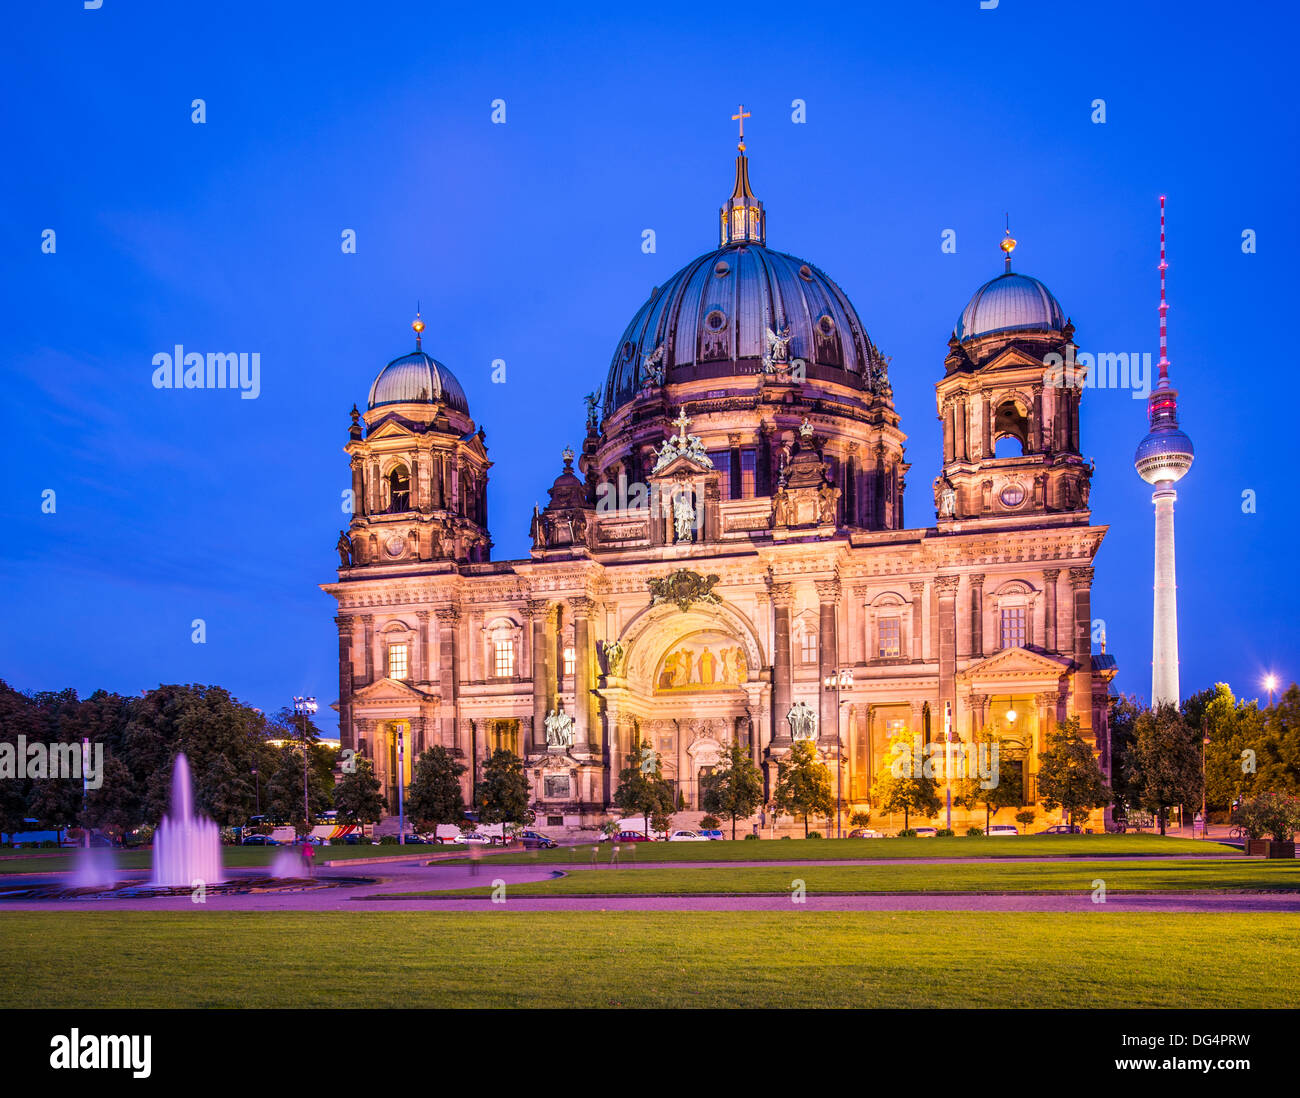 Berlin Cathedral in Berlin, Germany. The church's formation dates back to 1451. - Stock Image